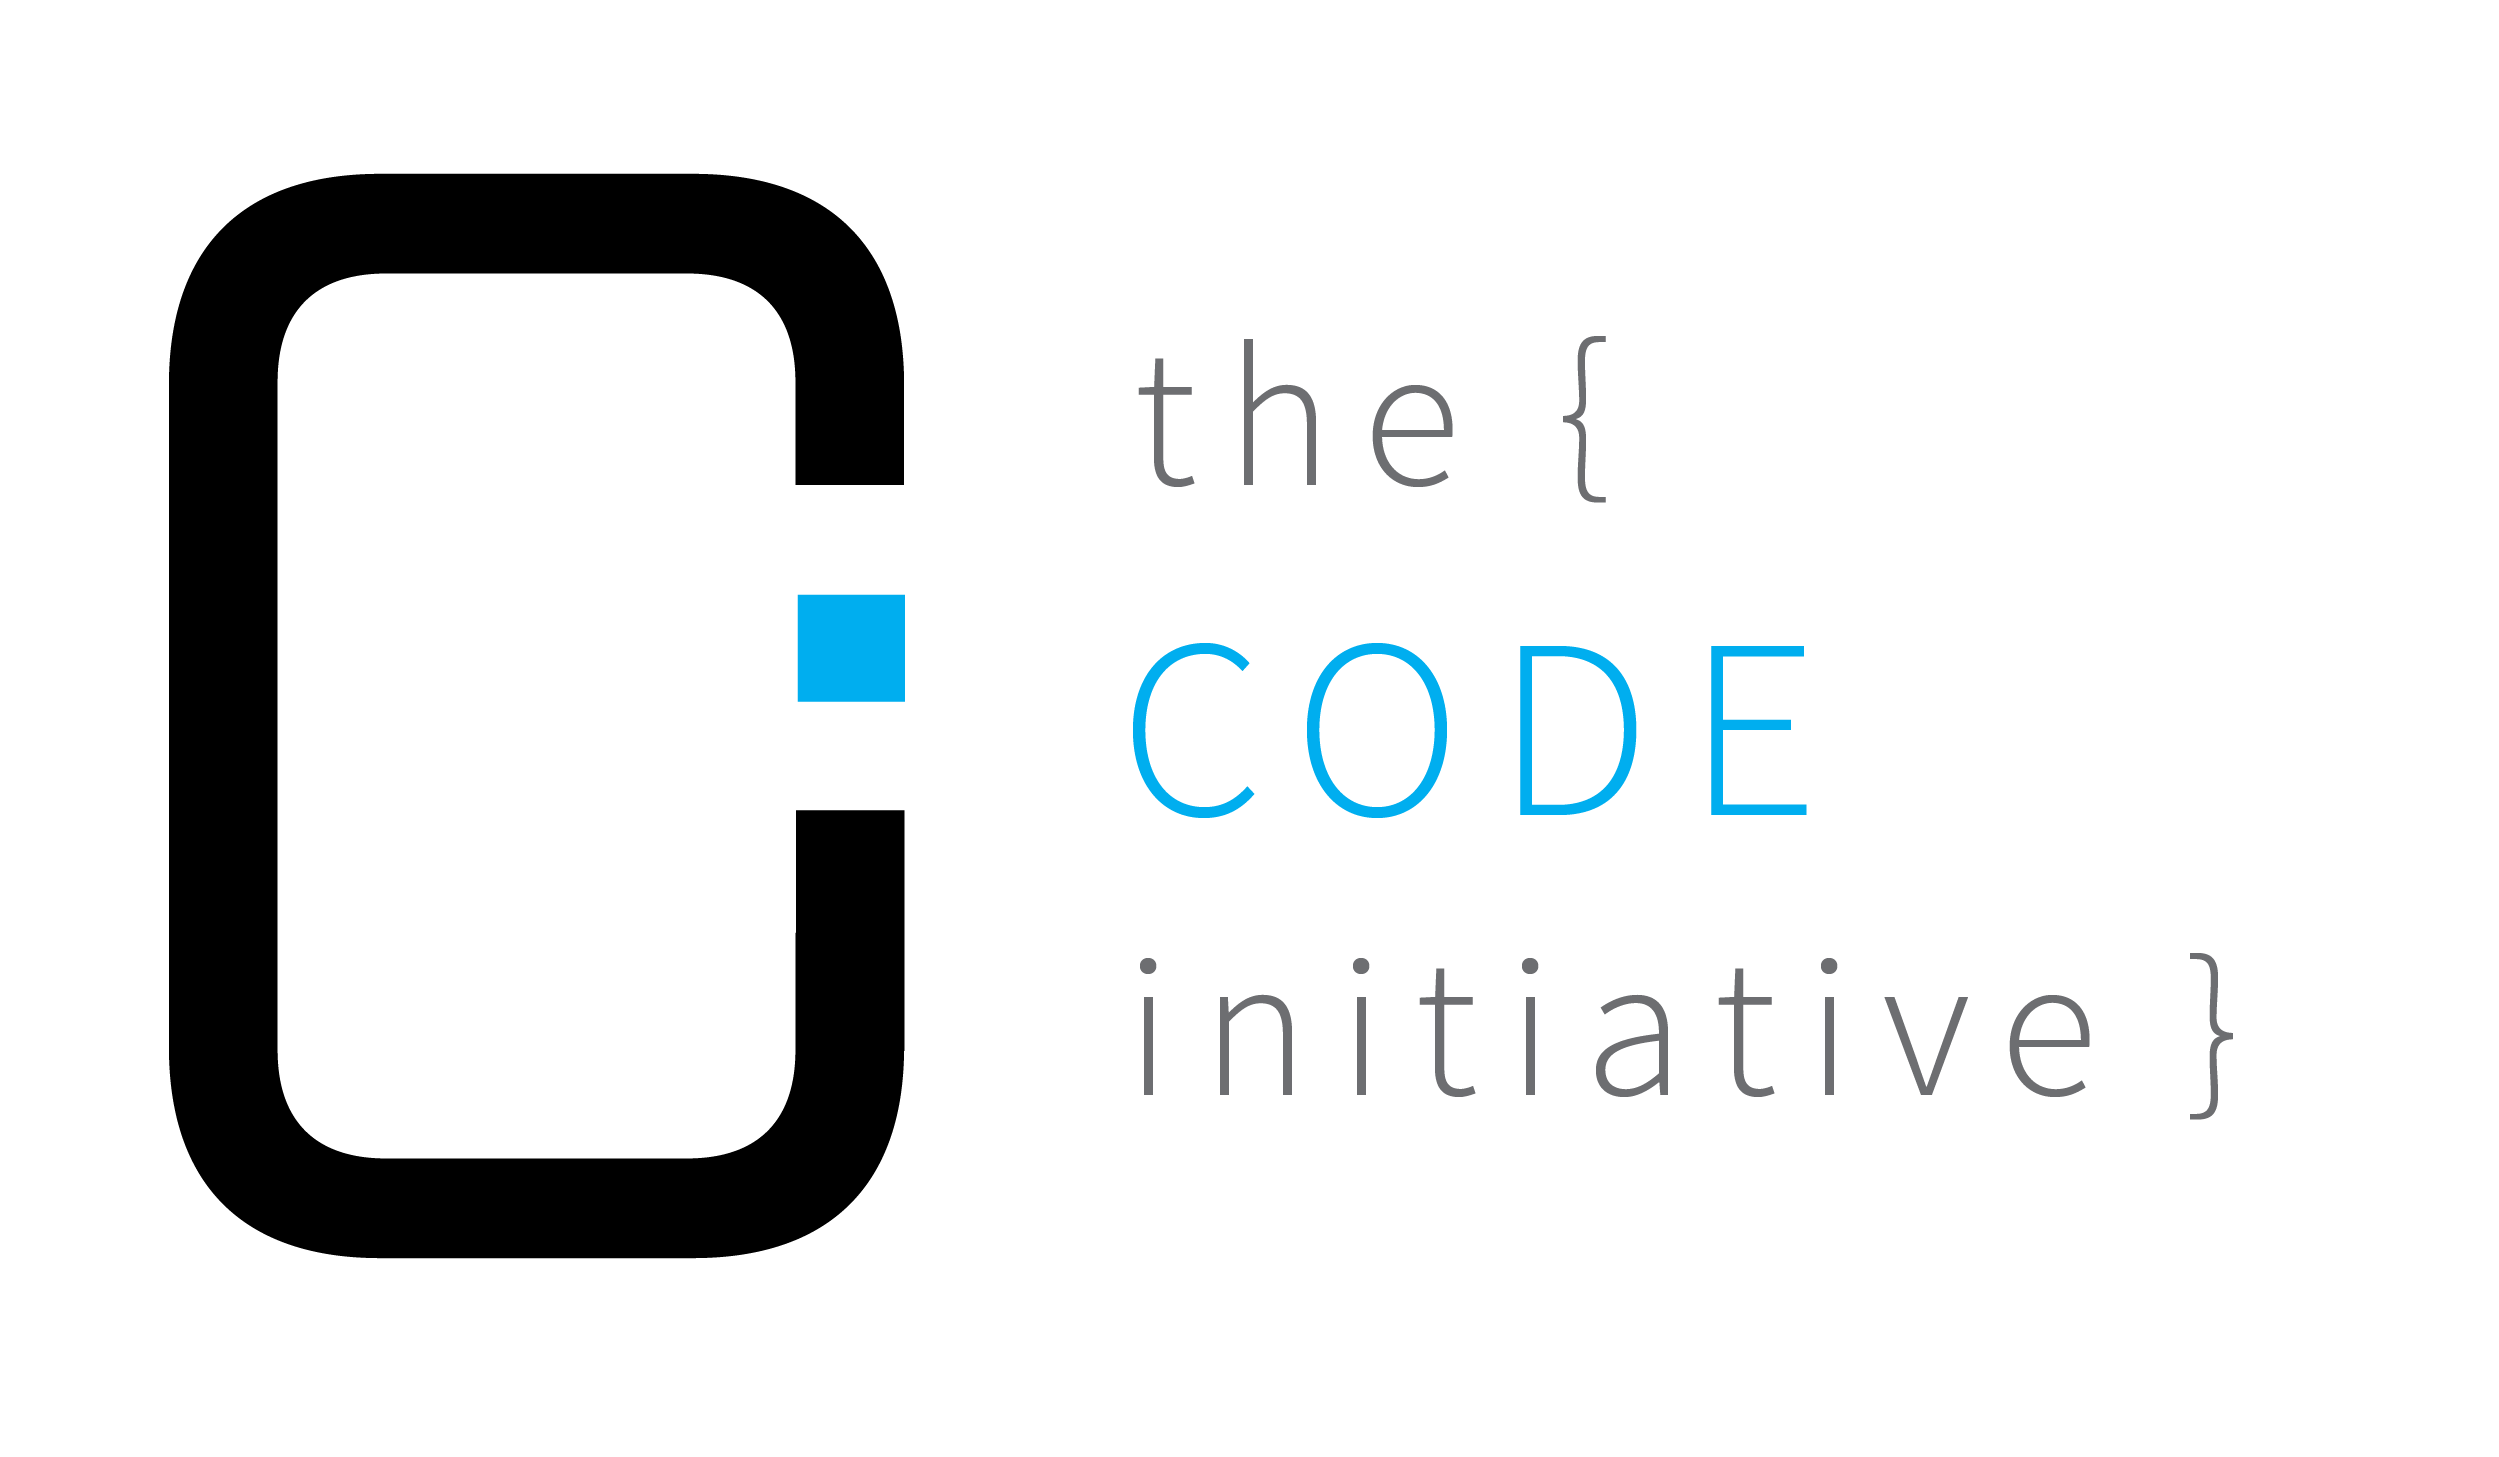 The C.O.D.E. Initiative Logo